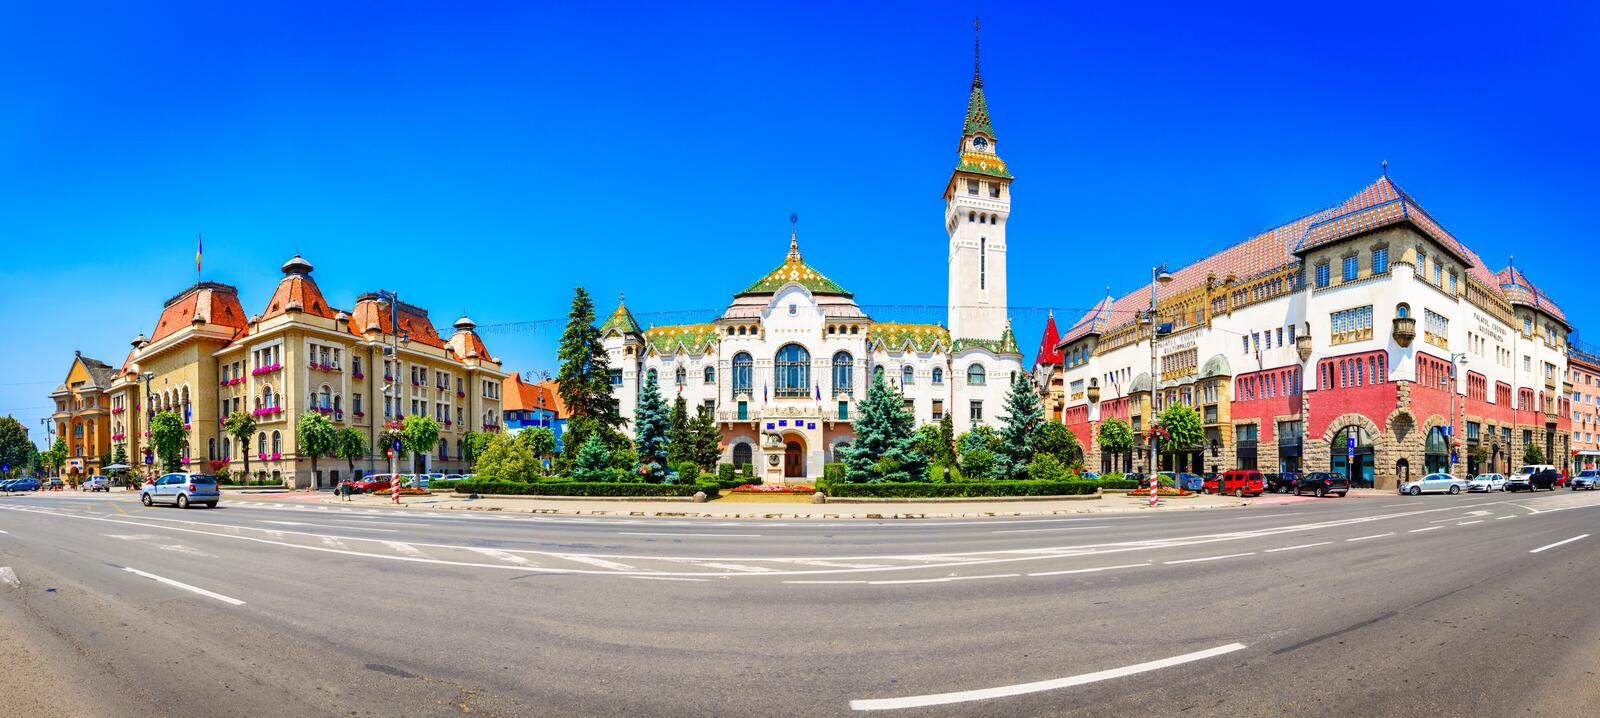 Targu-Mures, Romania, Europe. Street view of the Administrative. Palace and the Culture palace, landmark royalty free stock photo